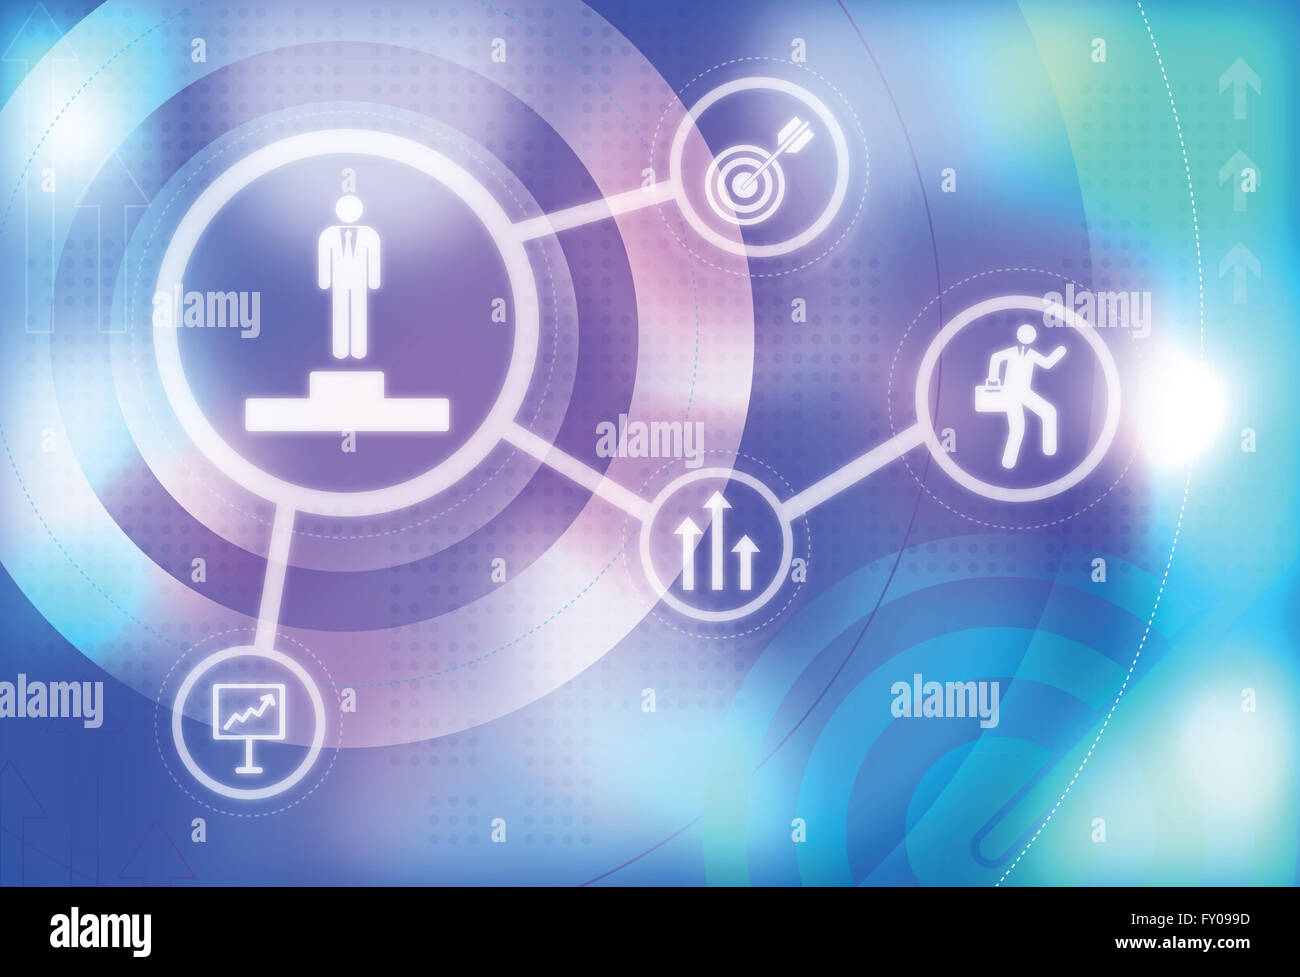 Illustrative image of business target, competition, incentive and funding - Stock Image